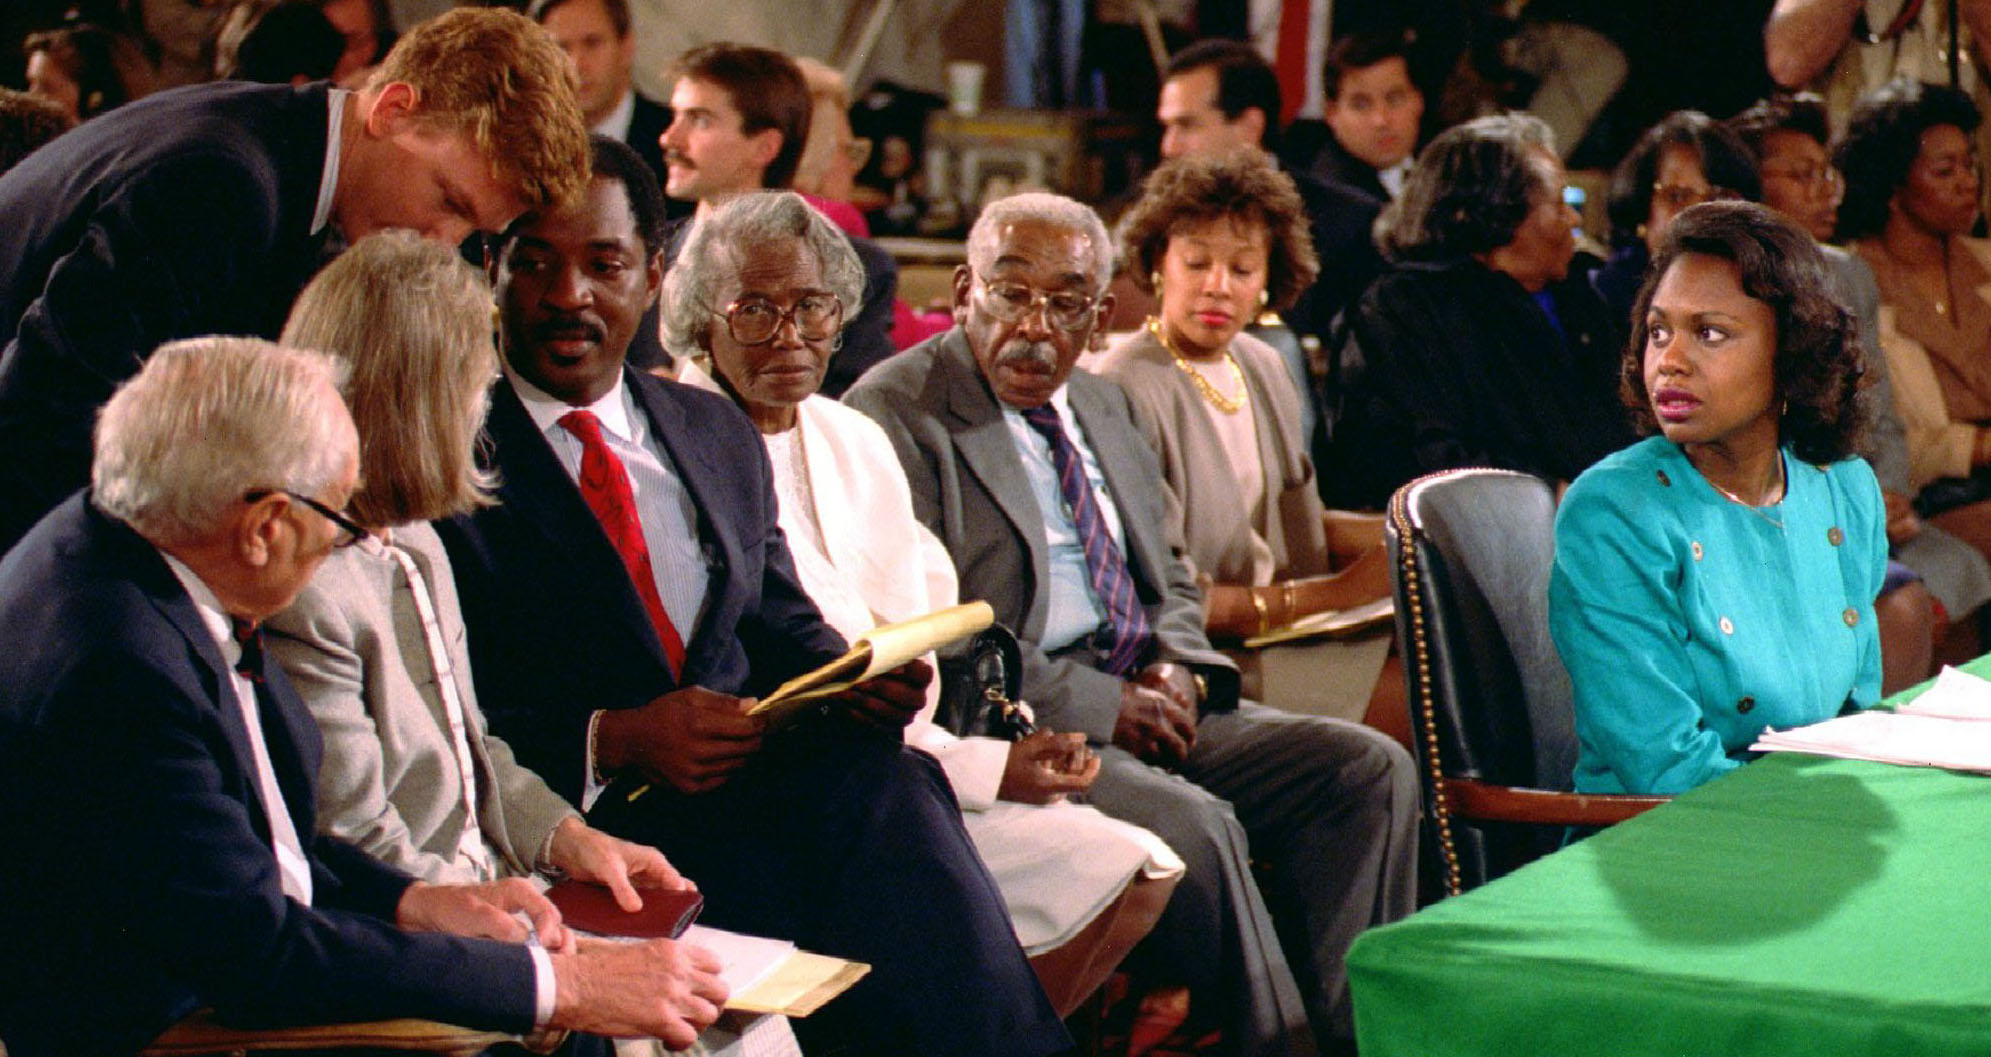 Anita Hill testifying during now-Supreme Court Associate Justice Clarence Thomas's confirmation hearings in 1991 ( source )